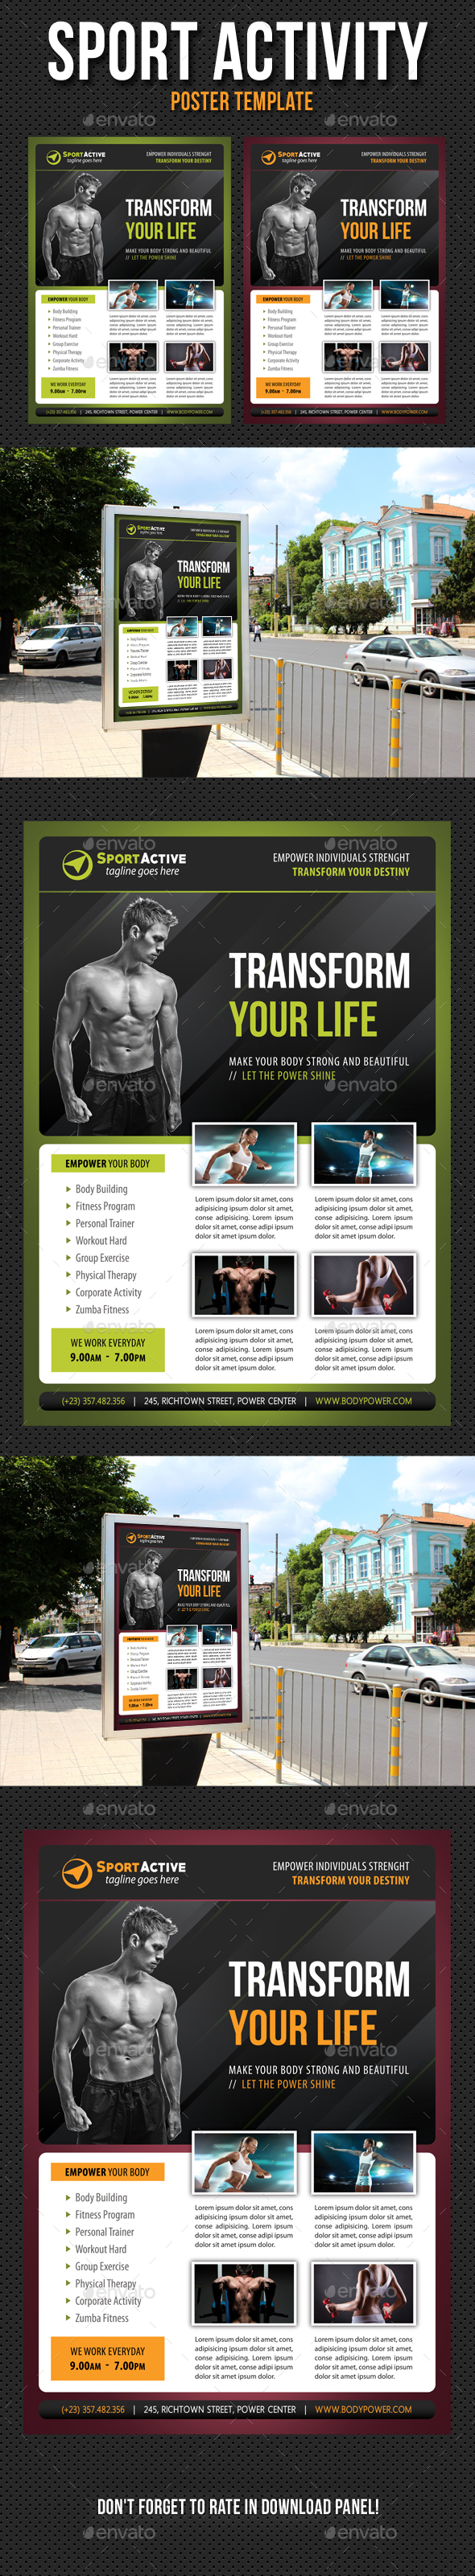 Sport Activity Poster Template V15 - Signage Print Templates